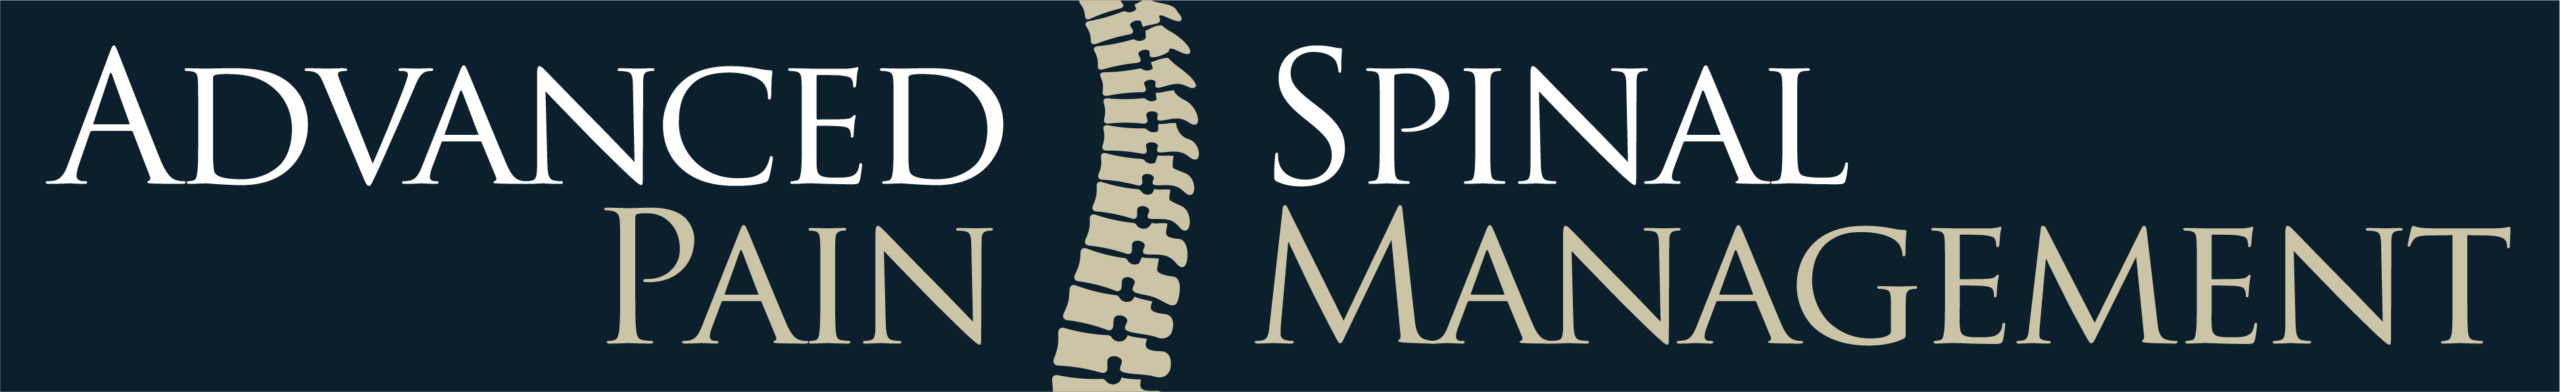 Information About Pain Aspm Advanced Spinal Pain Management